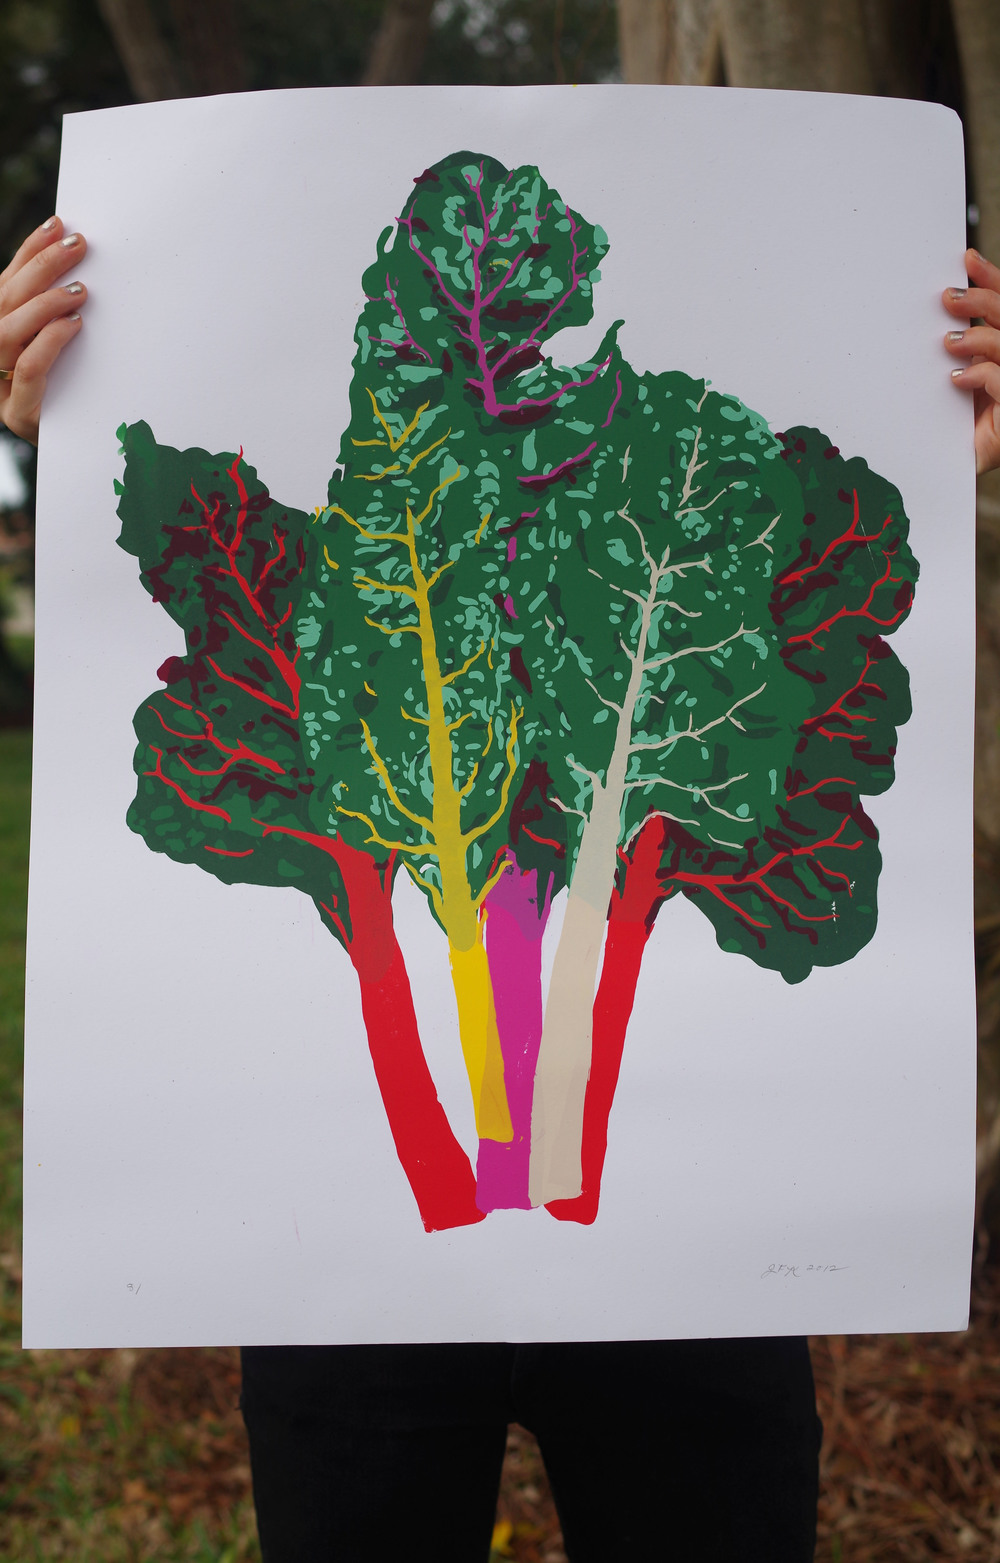 Winter Harvest: Rainbow Chard Print Photo by: Dan Aguayo